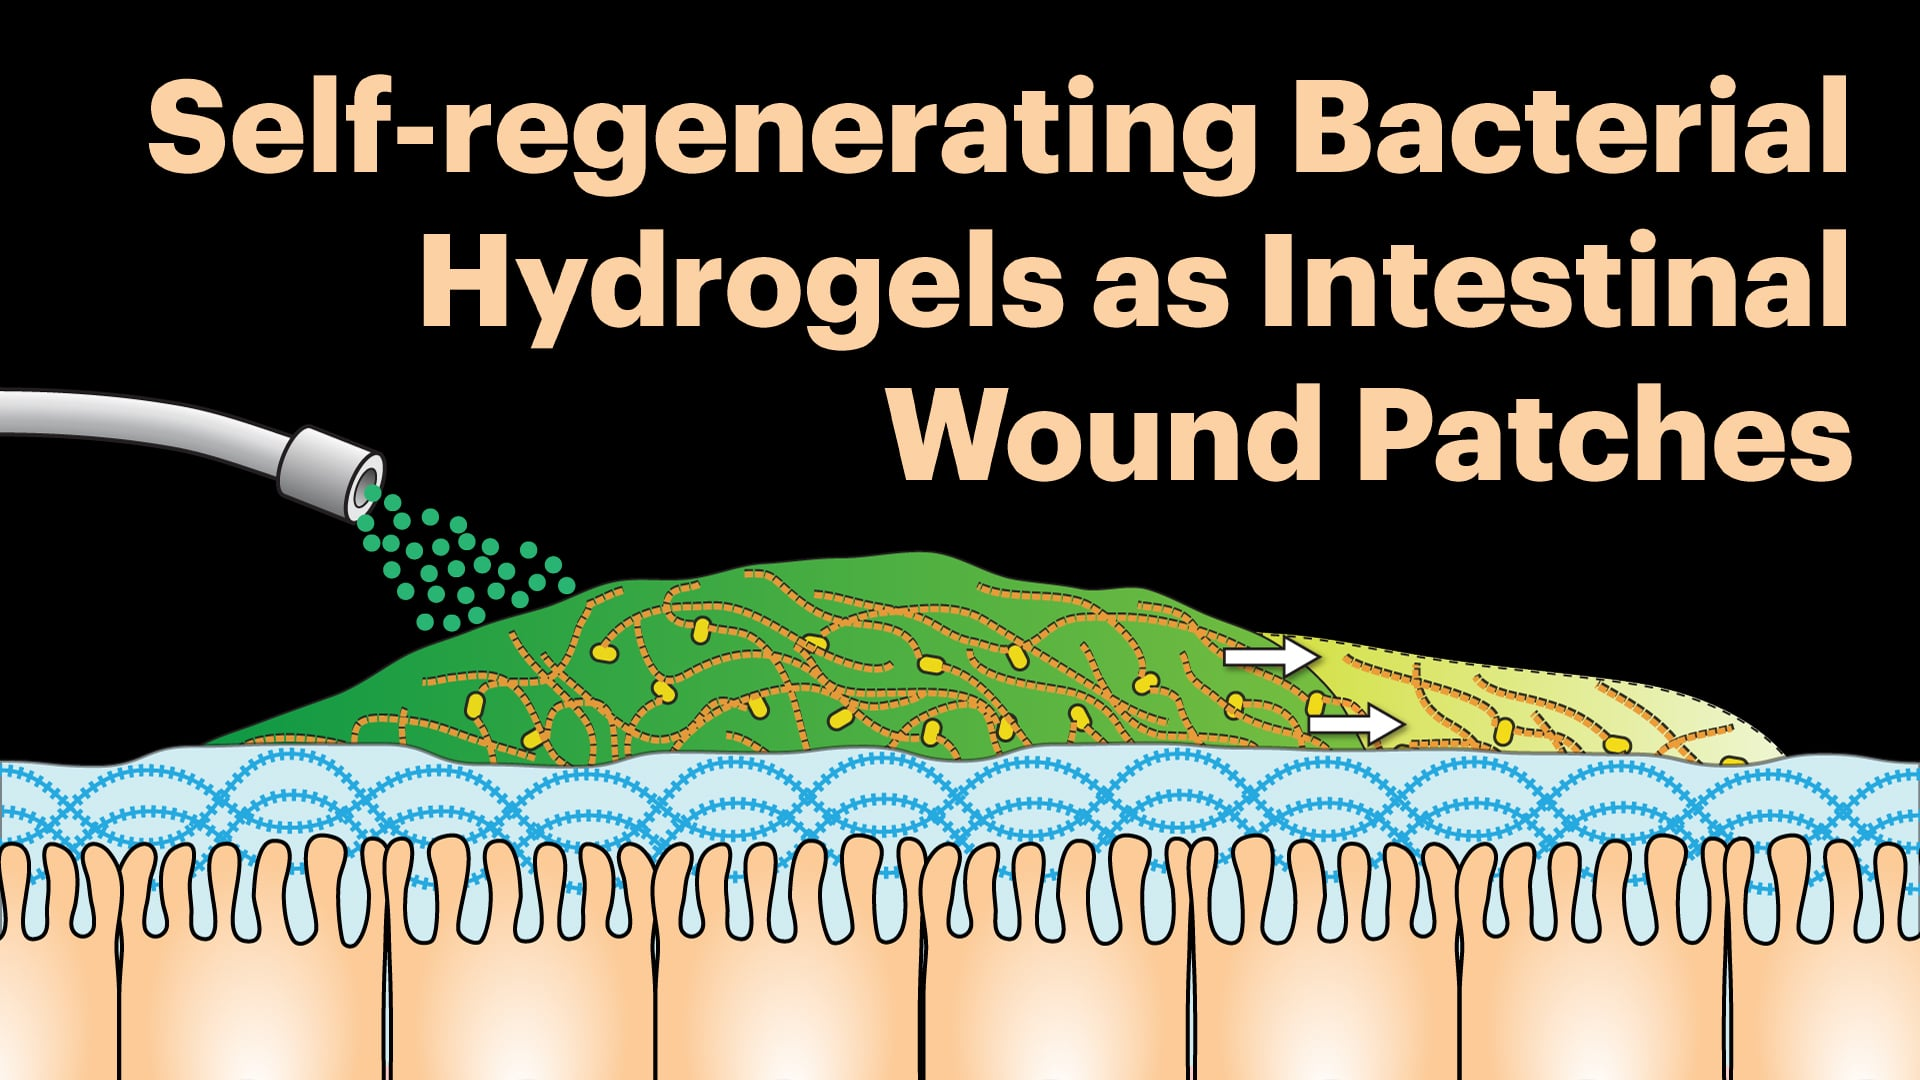 Self-regenerating bacterial hydrogels as intestinal wound patches